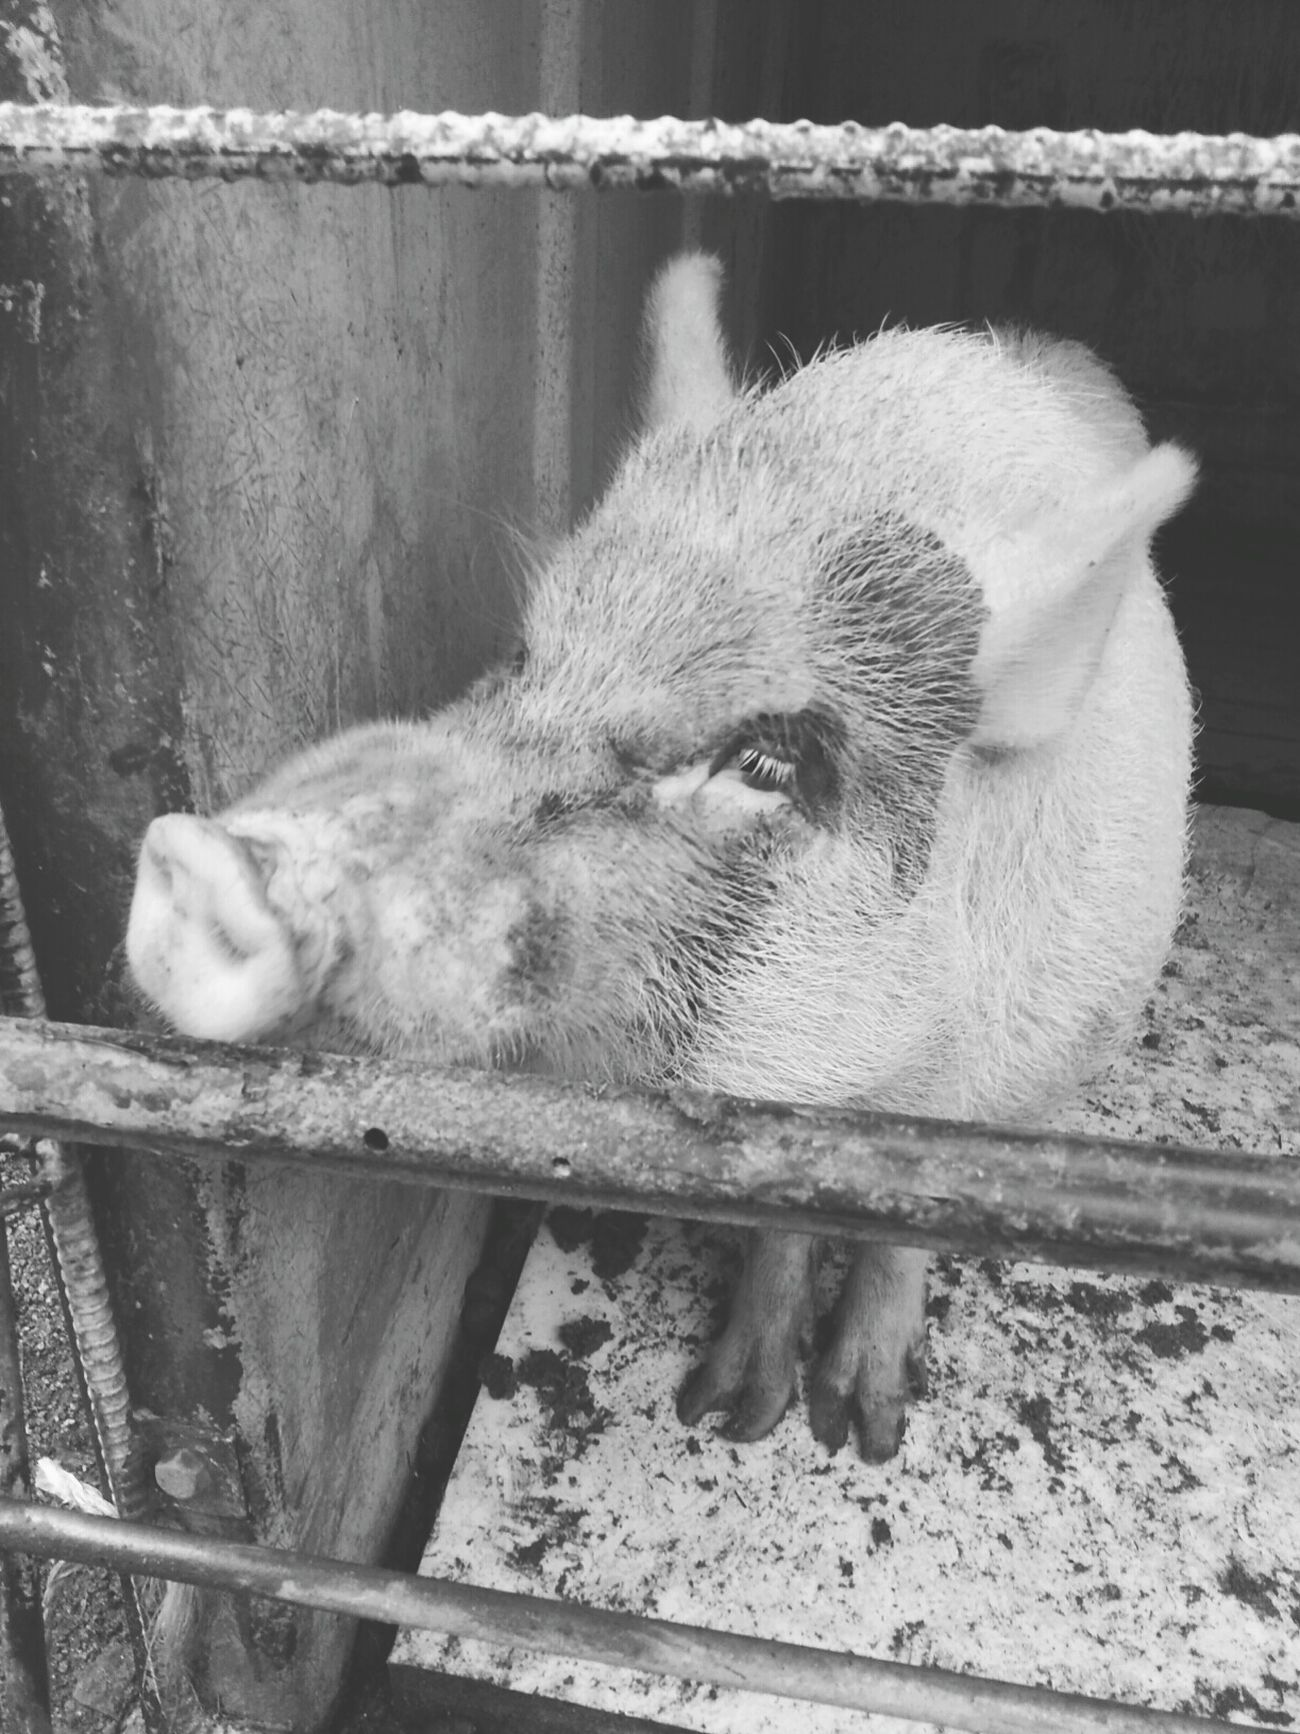 Pig Cute♡ Animal A lot of amiability♪ 六甲山牧場